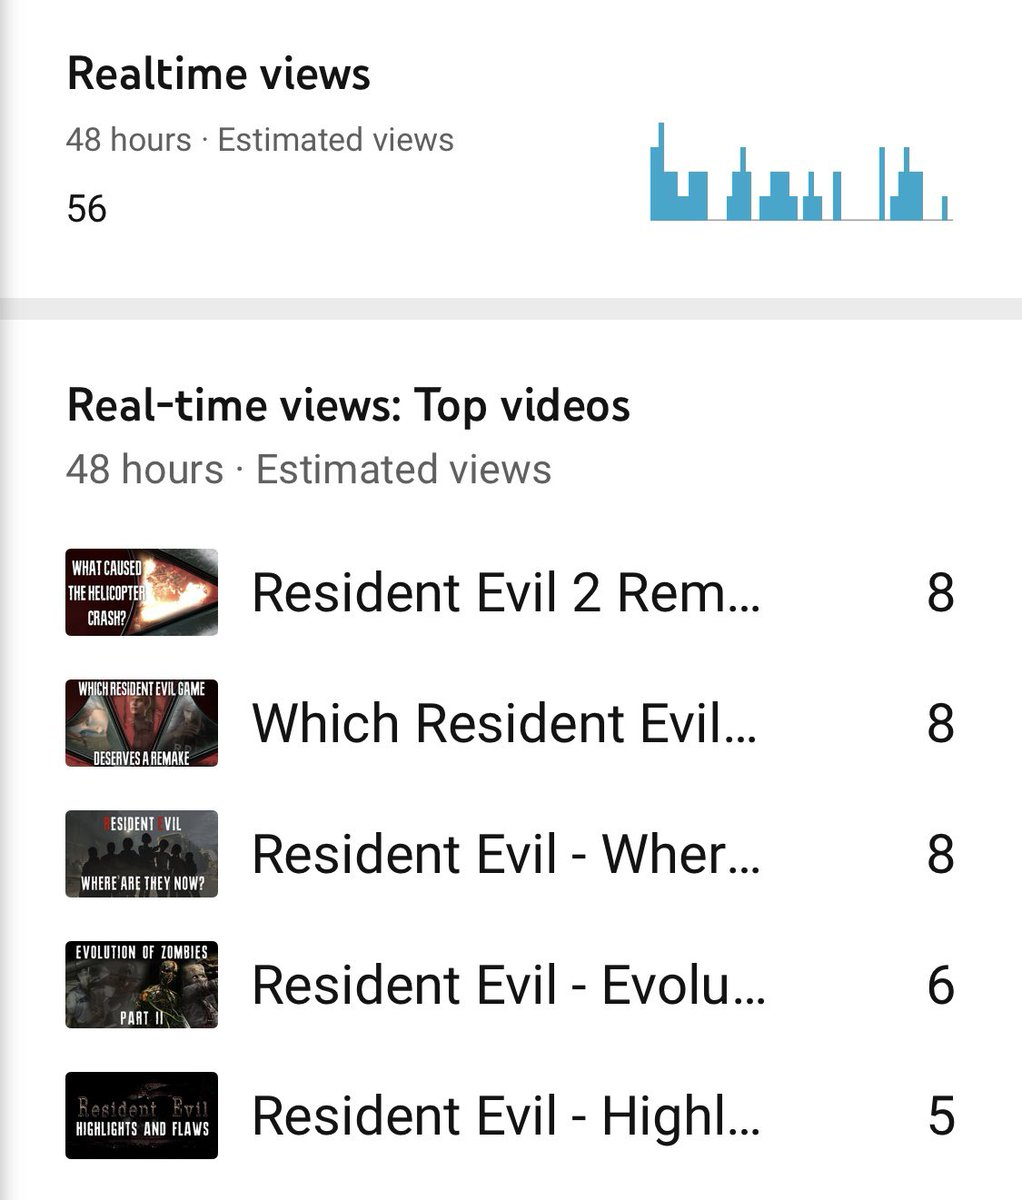 Looks like the 700+ views I was getting thanks to the surge from the #REShowcase has ended. Back to my regulate 10-60 views a day now :-)